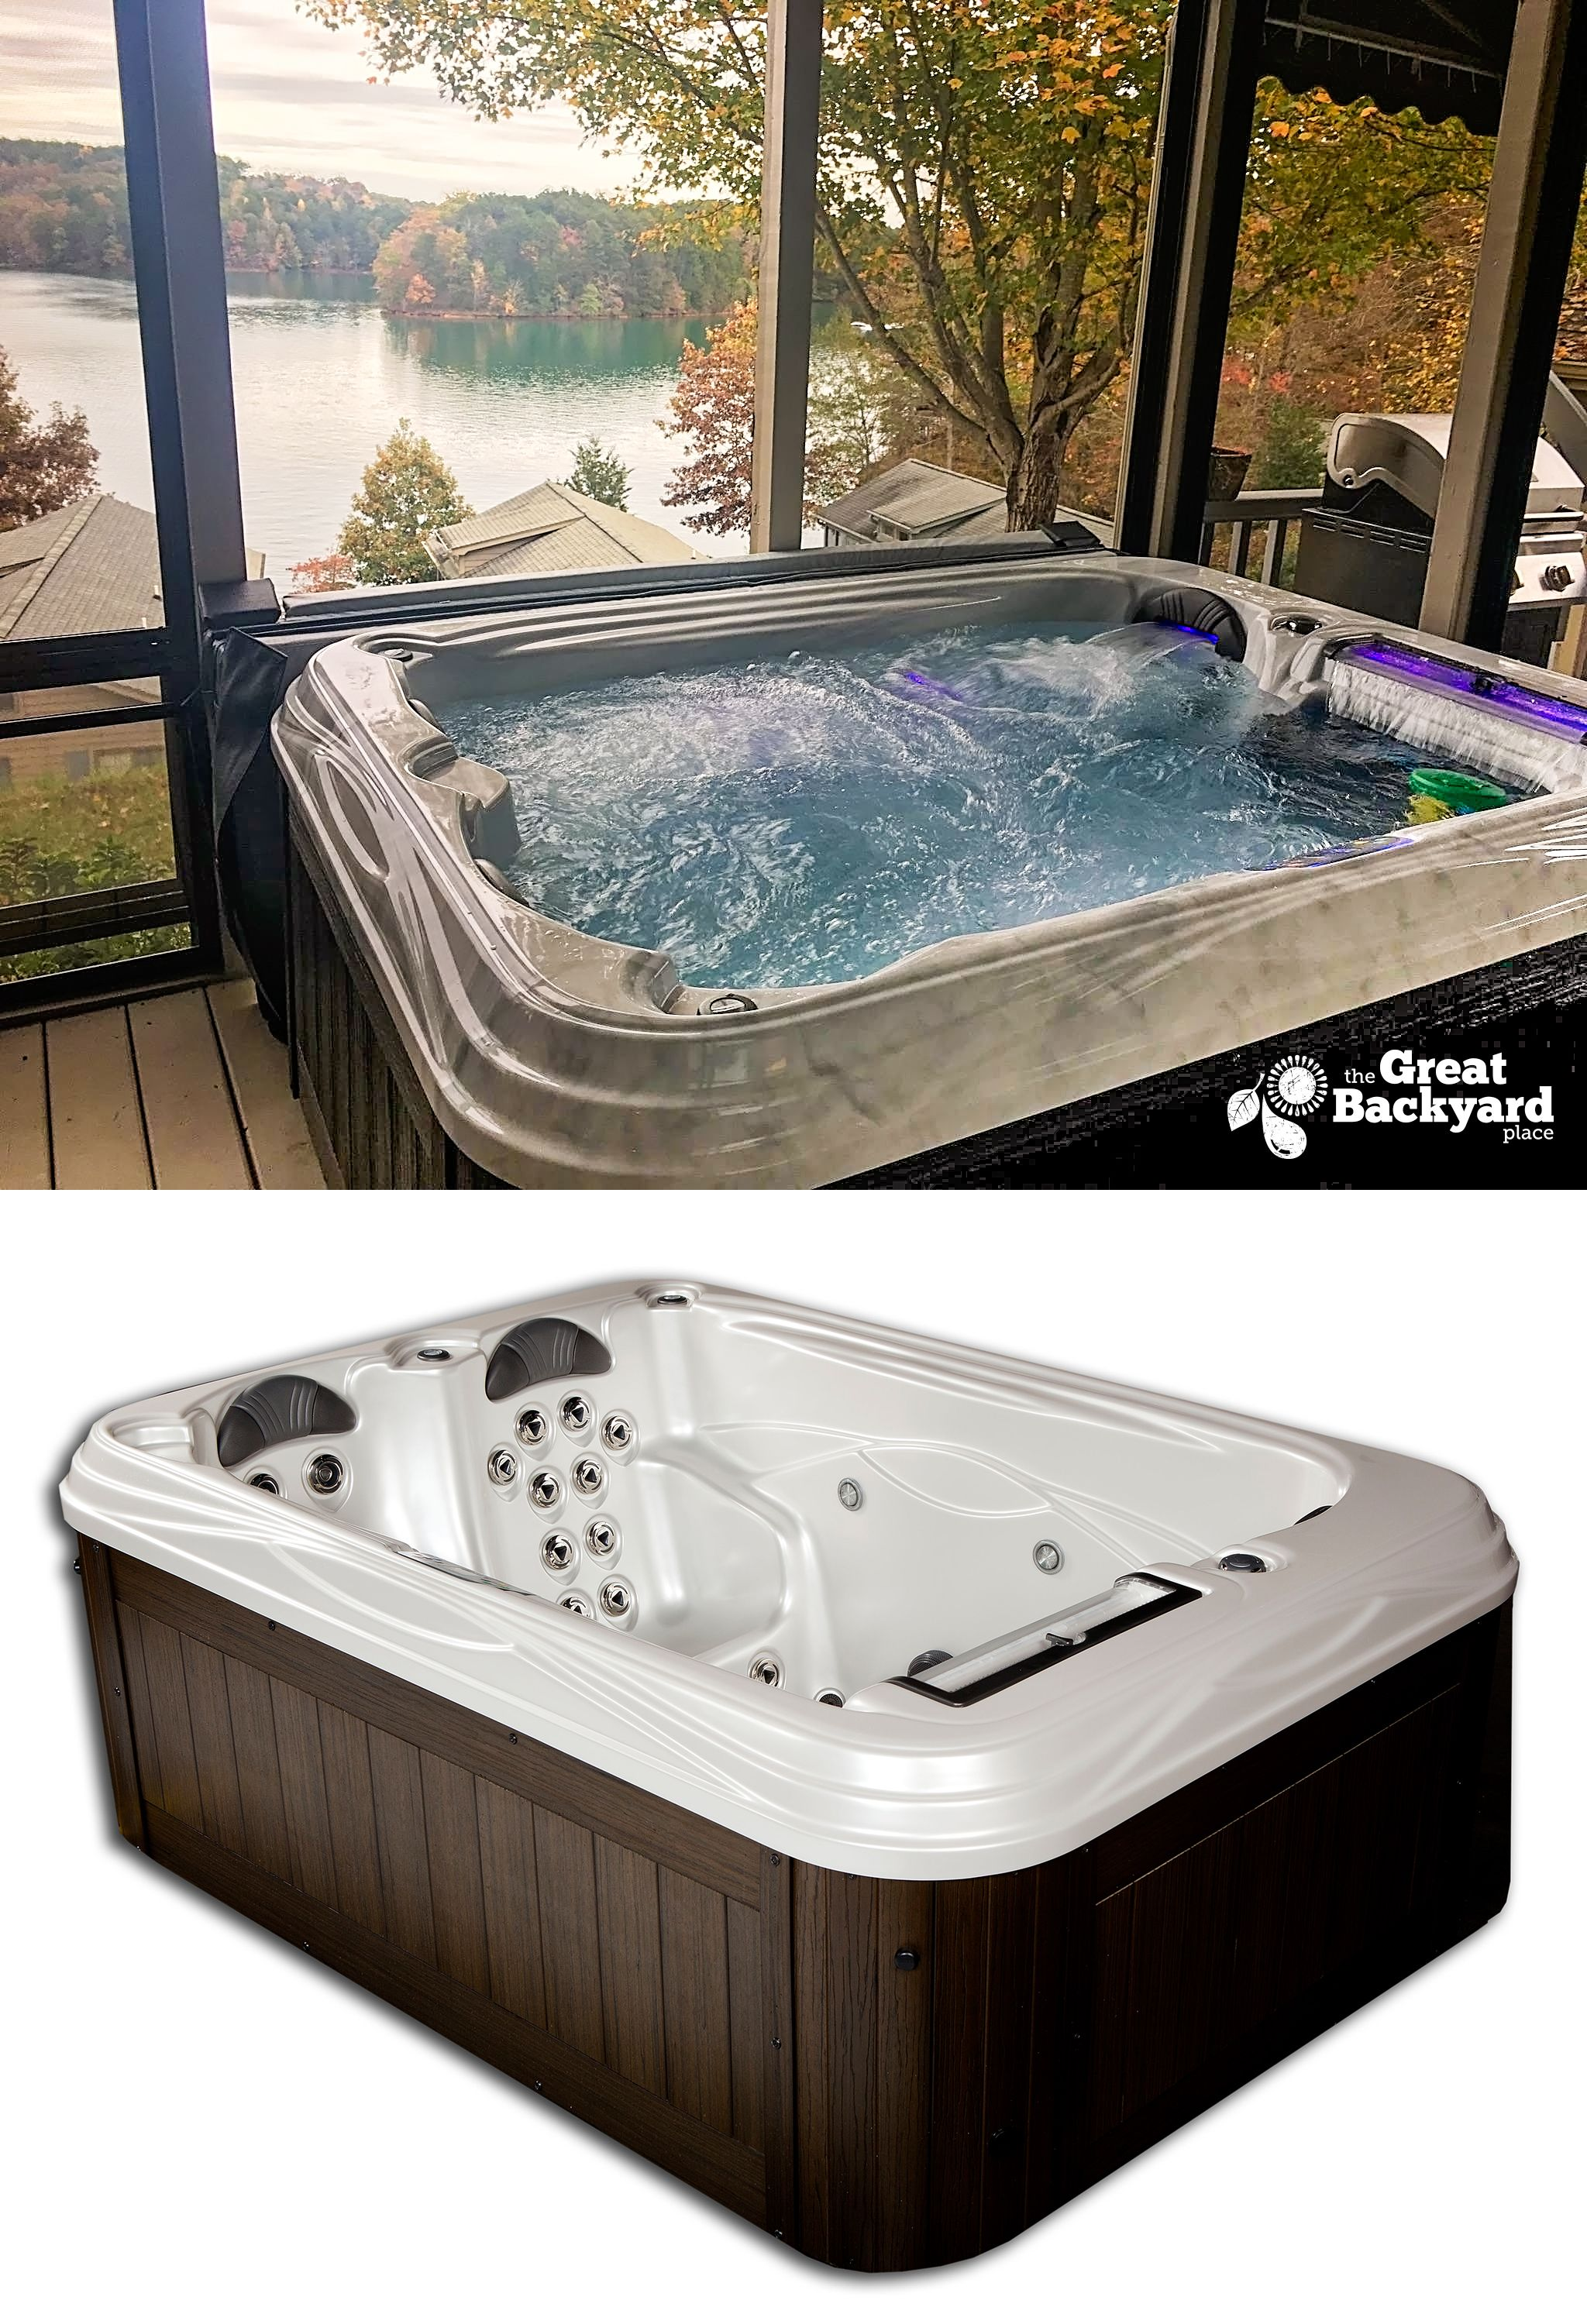 After A Long Day Engulf Your Aching Muscles In The Ultimate Hydrotherapy Of The Santa Cruz The Strategically Placed Jets In Spa Hot Tubs Hot Tub Small Patio